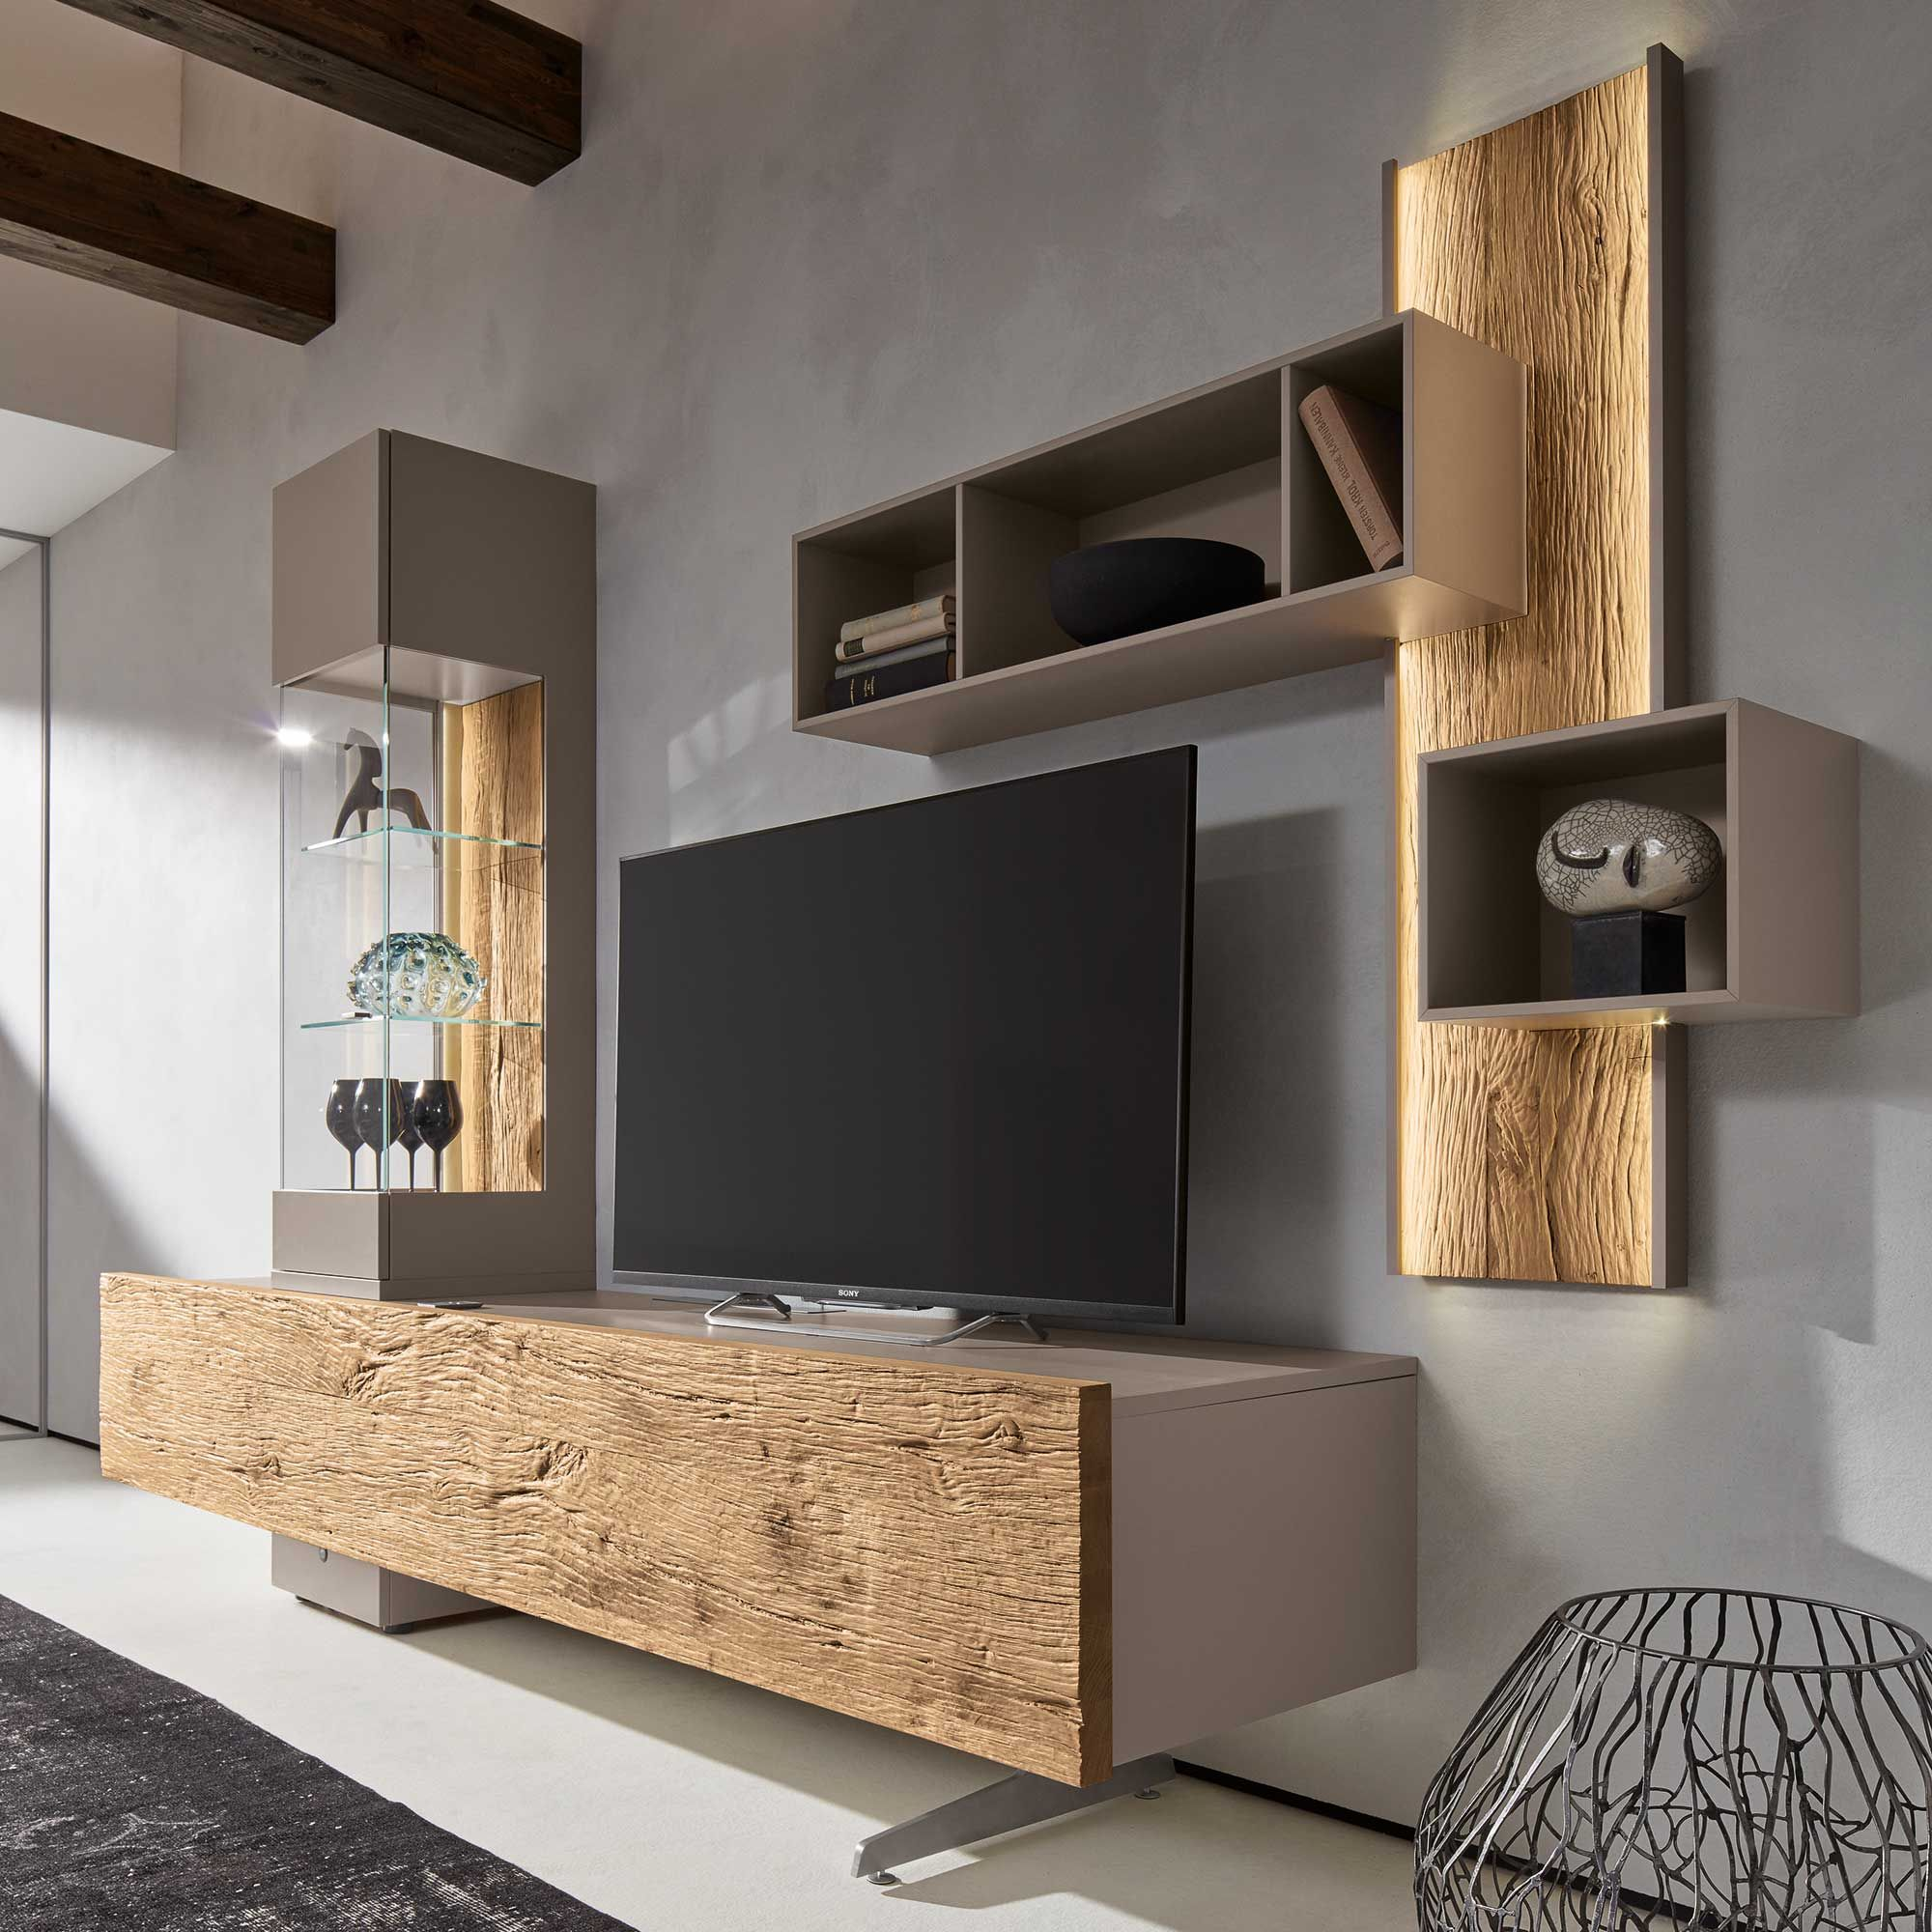 Bohle combination tv wall unit oak glass barker - Wall units for living room mumbai ...